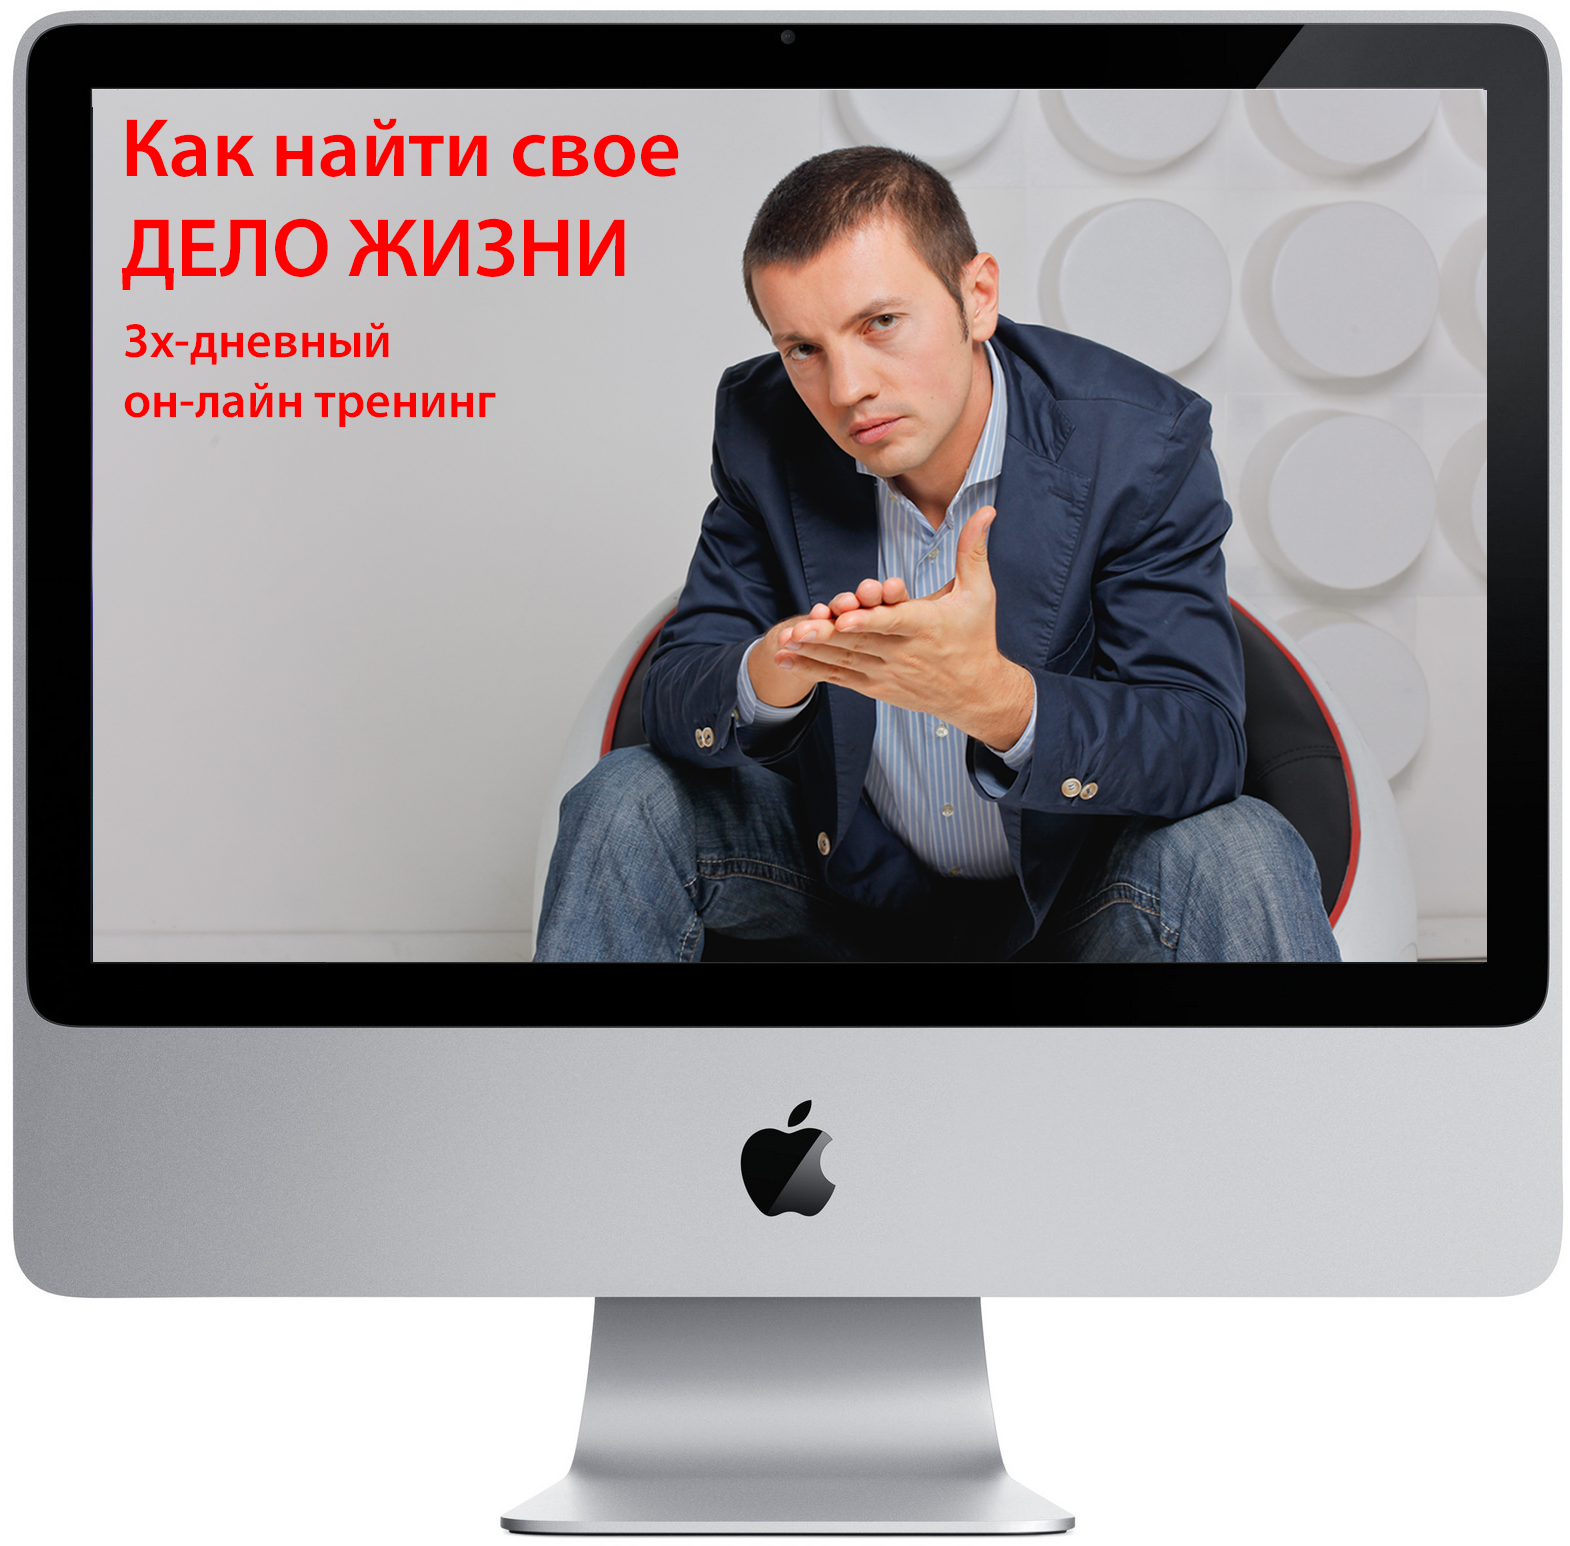 http://shop.predestination.ru/media/content/pavelkochkin/iMac20MDP26-xlarge32.png